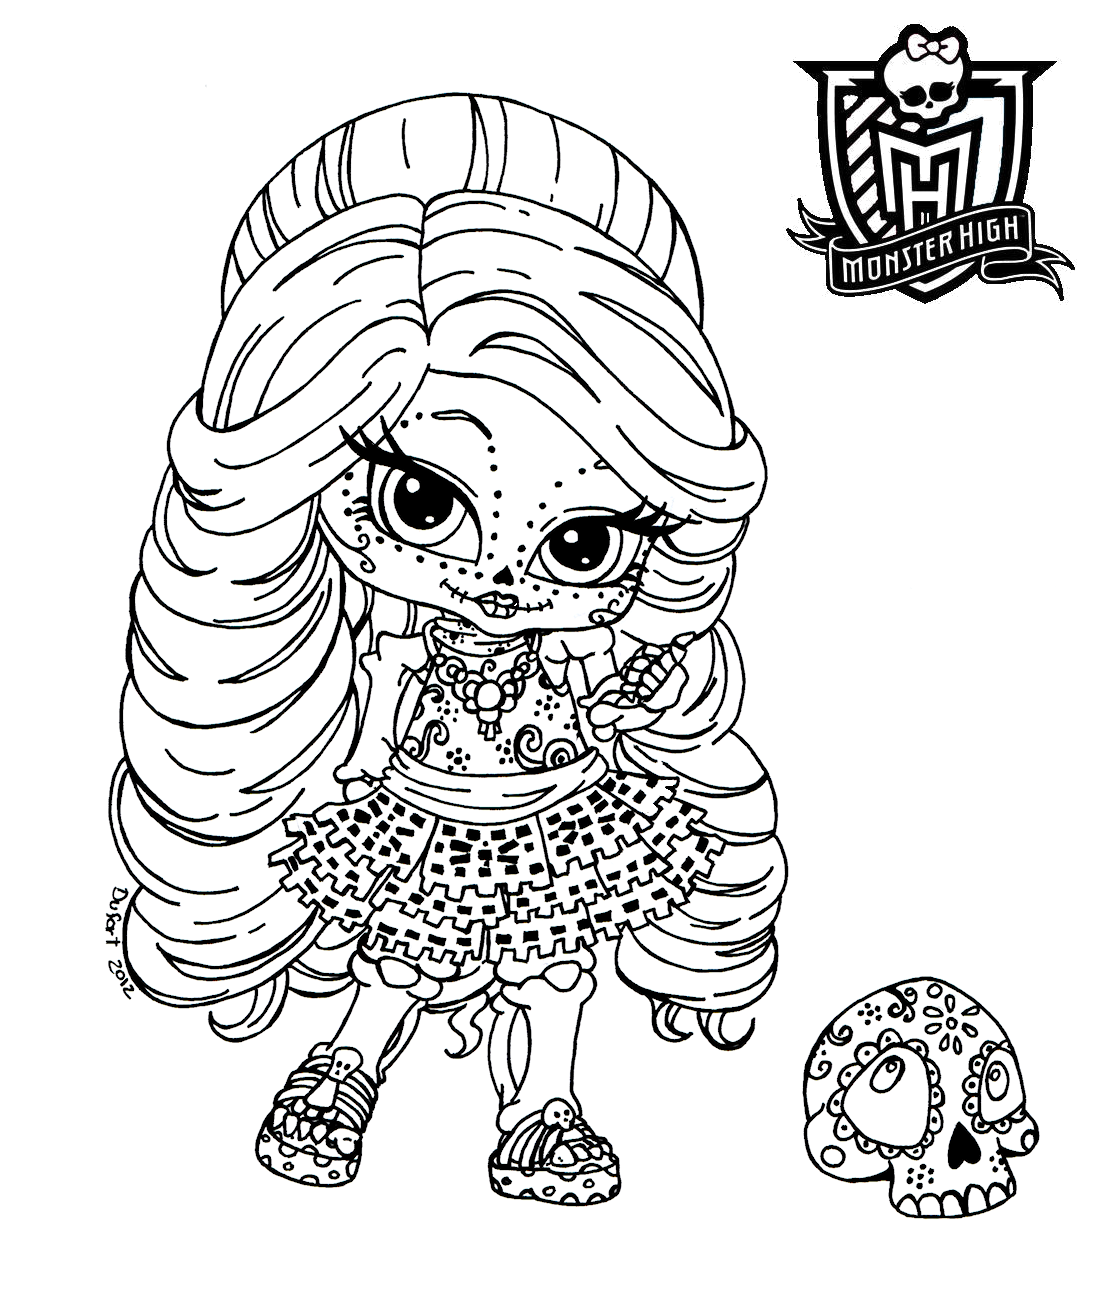 Baby Monster High Coloring Pages | Monster High Coloring Pages